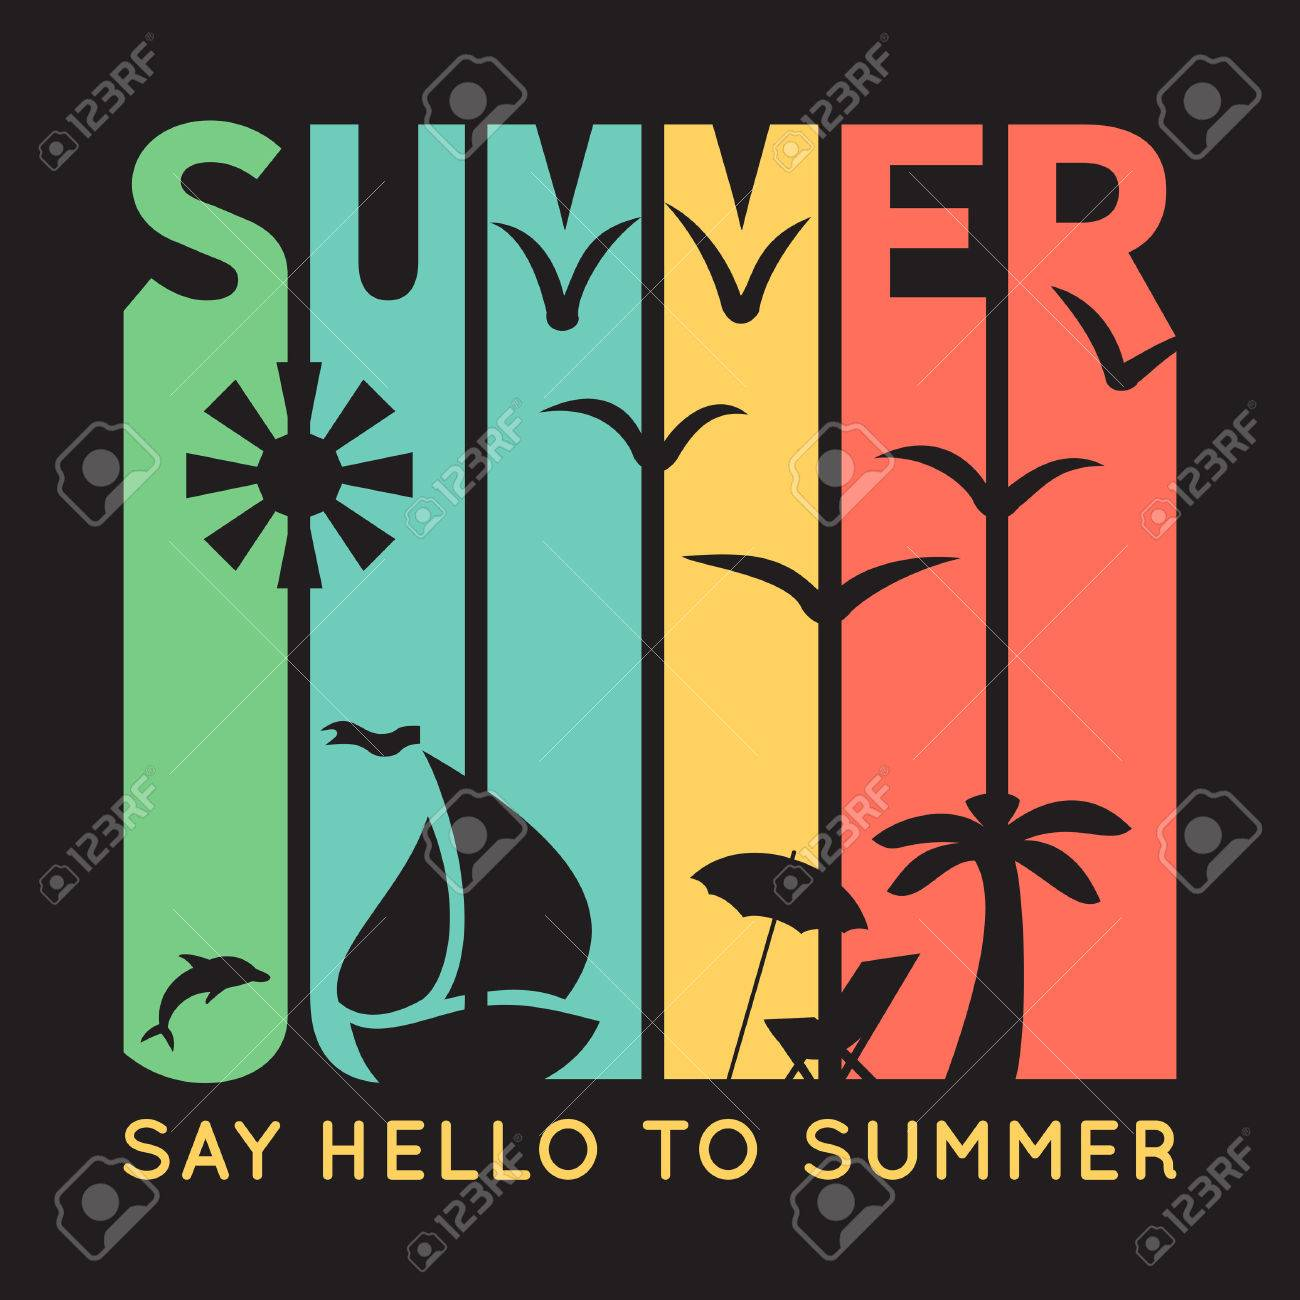 Summer typography with beach icons, t-shirt graphics on black background. illustration. Banner of simple bright symbols of holidays. Sun, boat, palm tree, bird. - 50437760